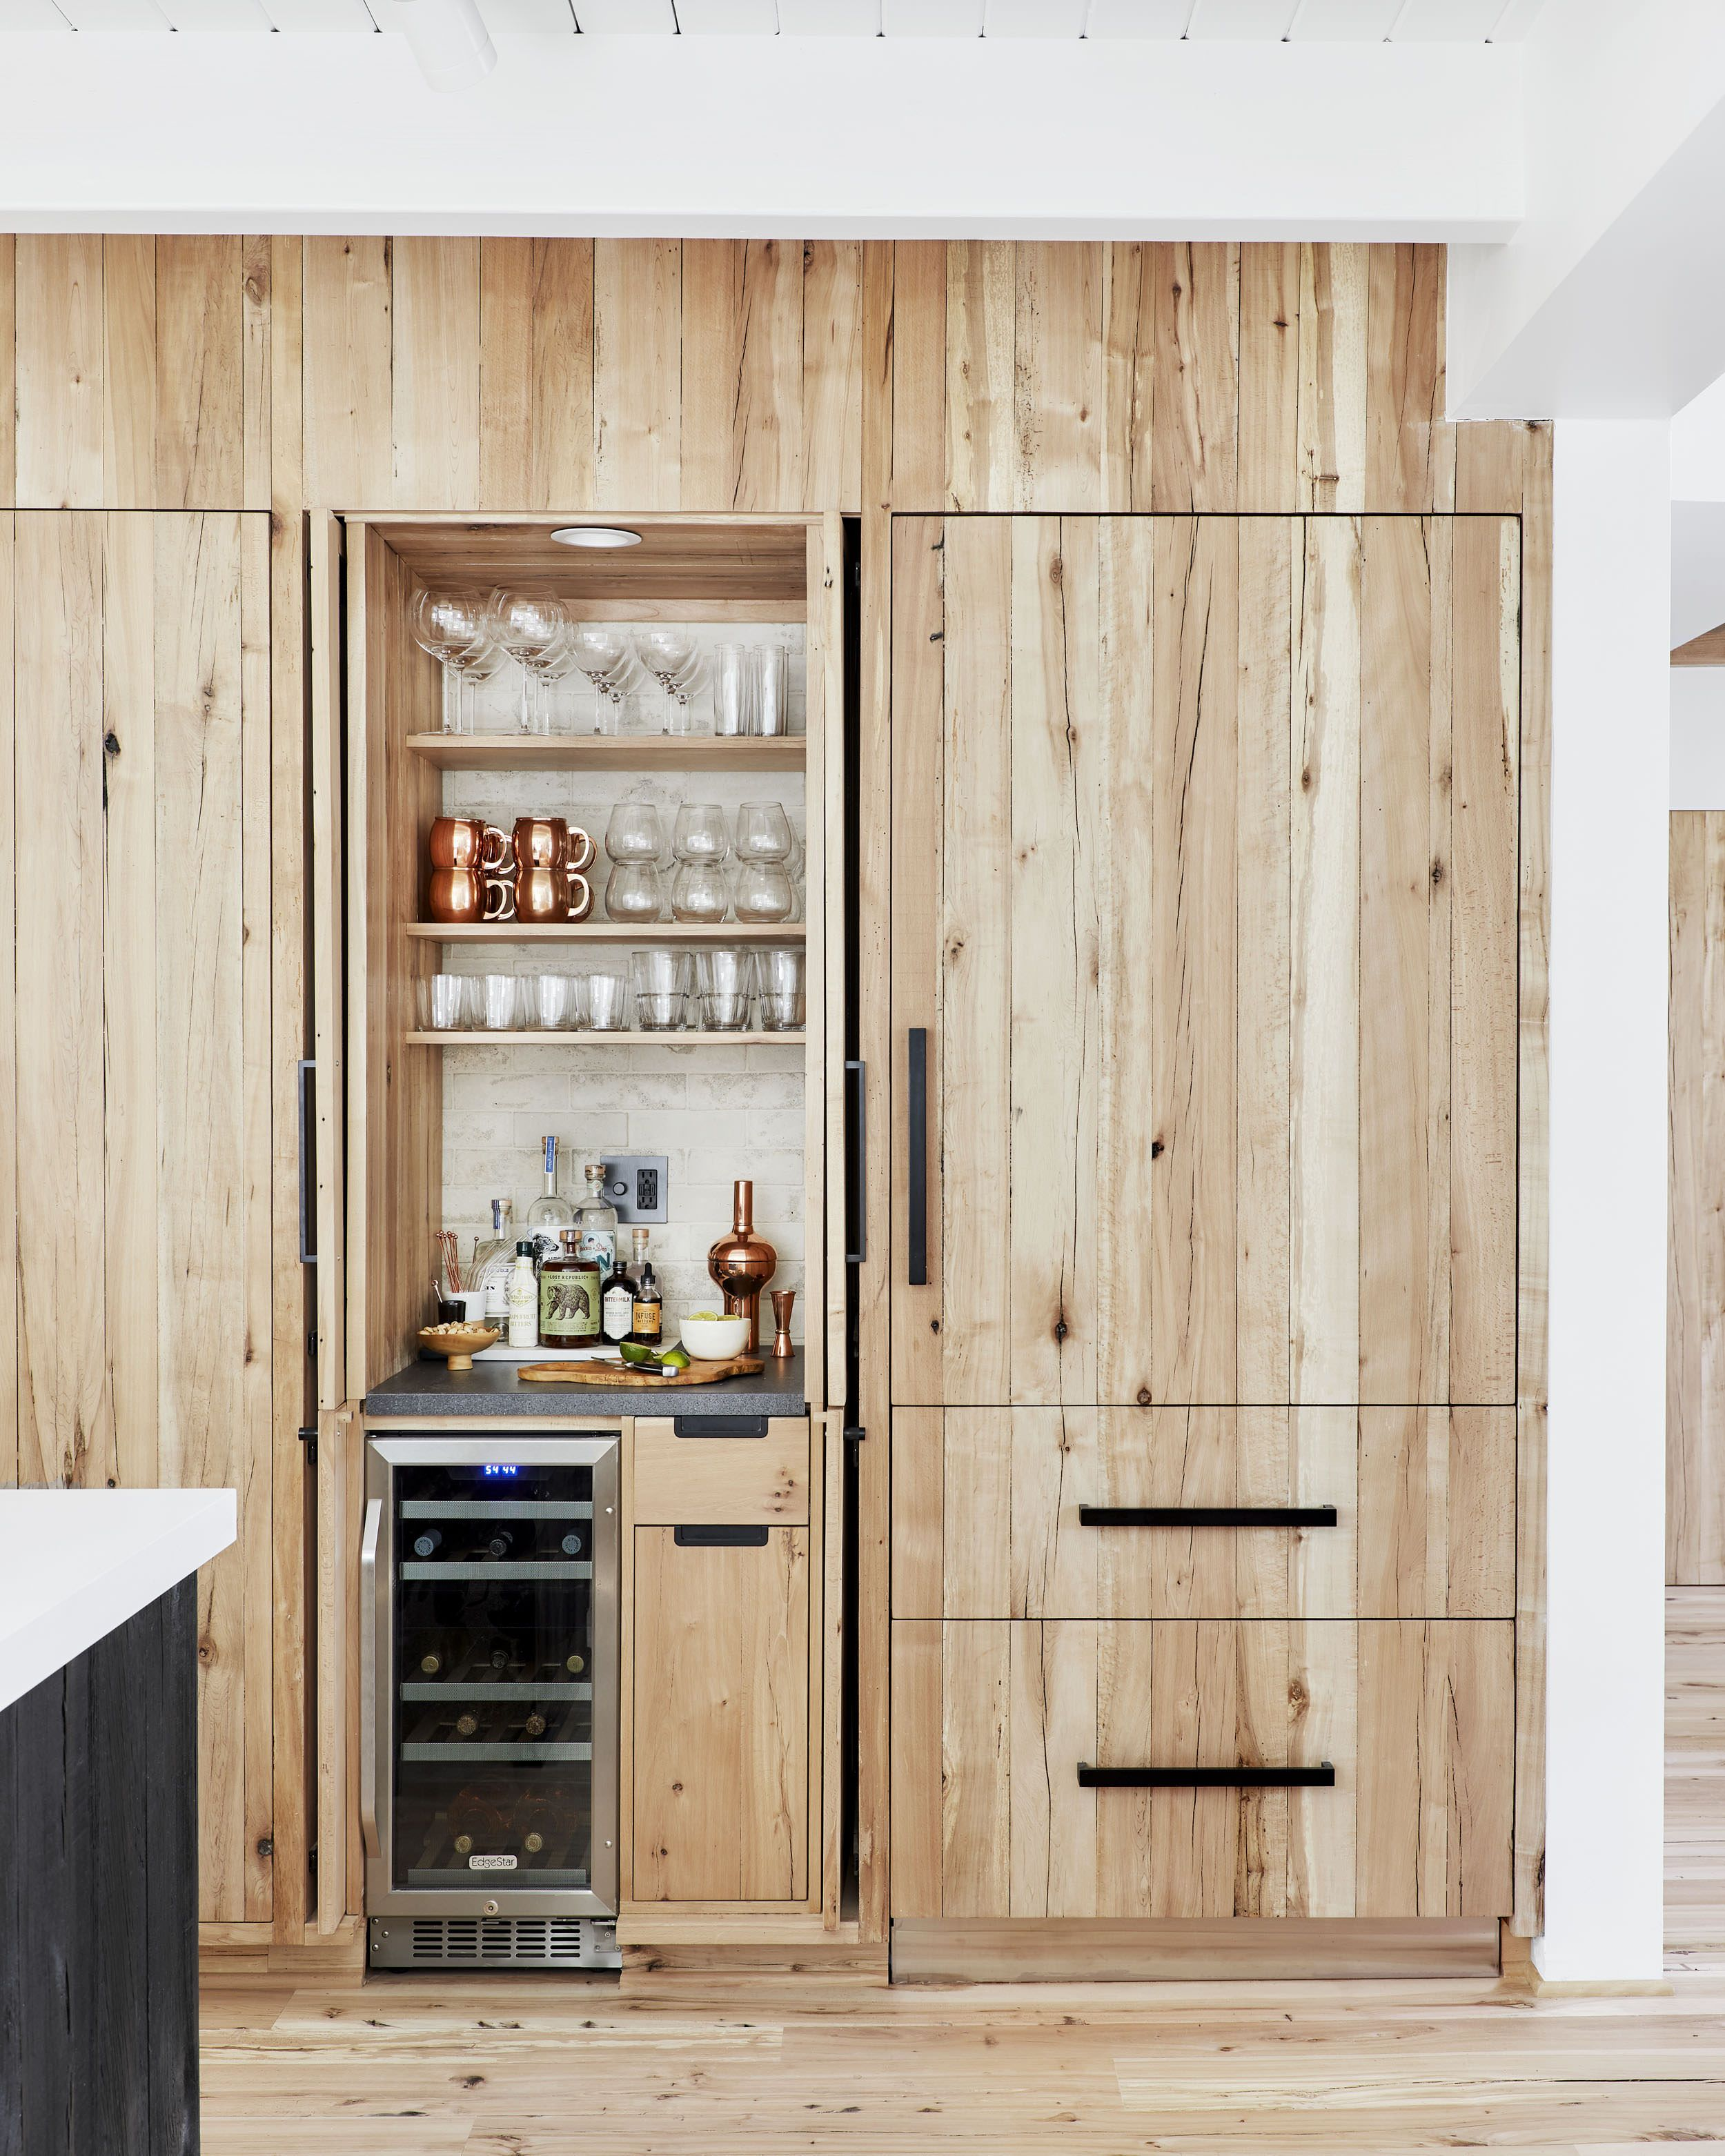 How We Organized All Our Drawers Cabinets In The Mountain House Kitchen Home Kitchens Kitchen Cabinet Design Freezer Organization